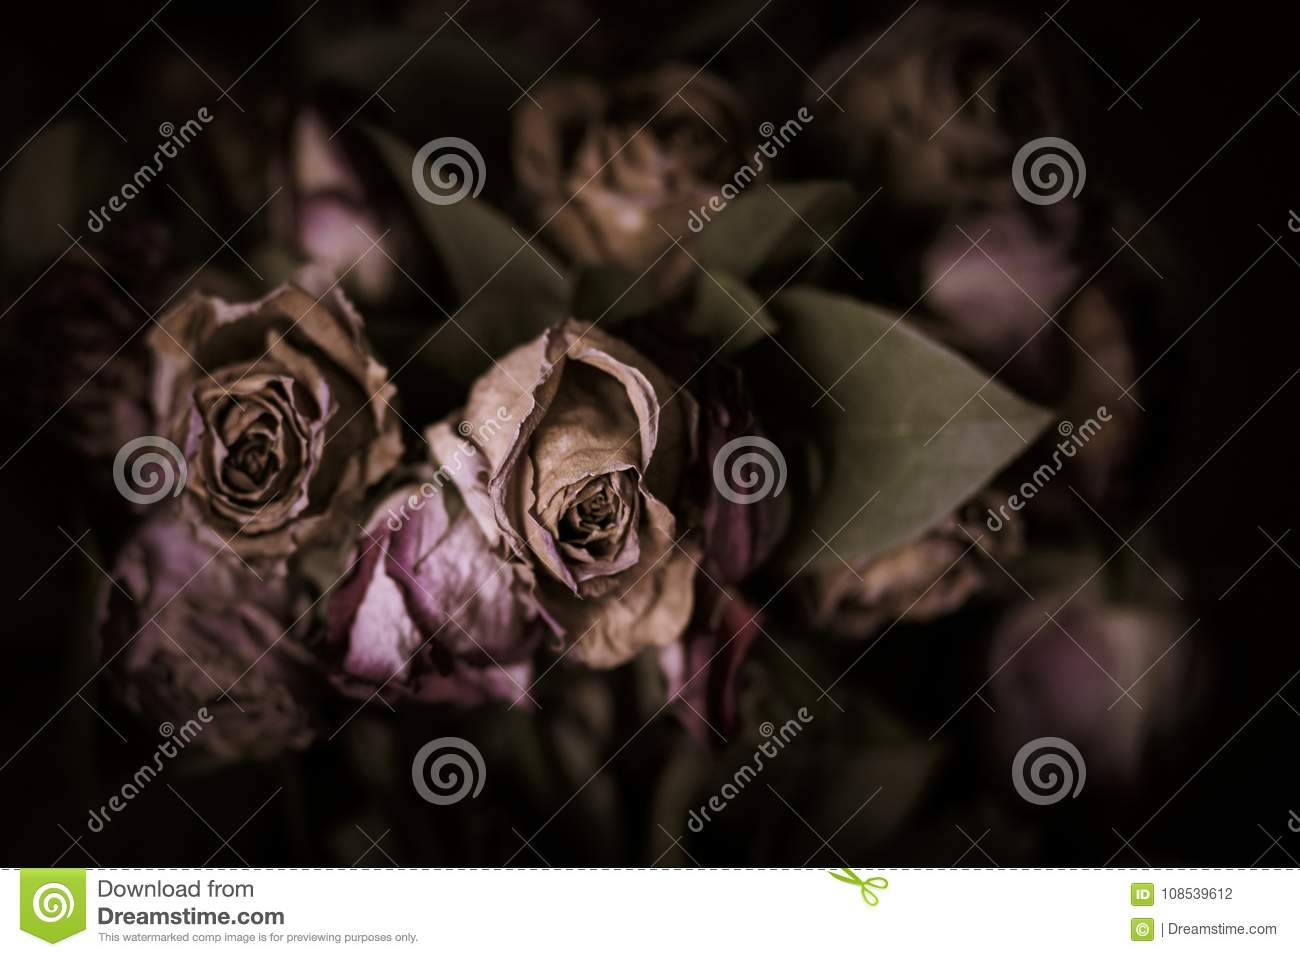 Dark vintage style image of a bouquet of roses